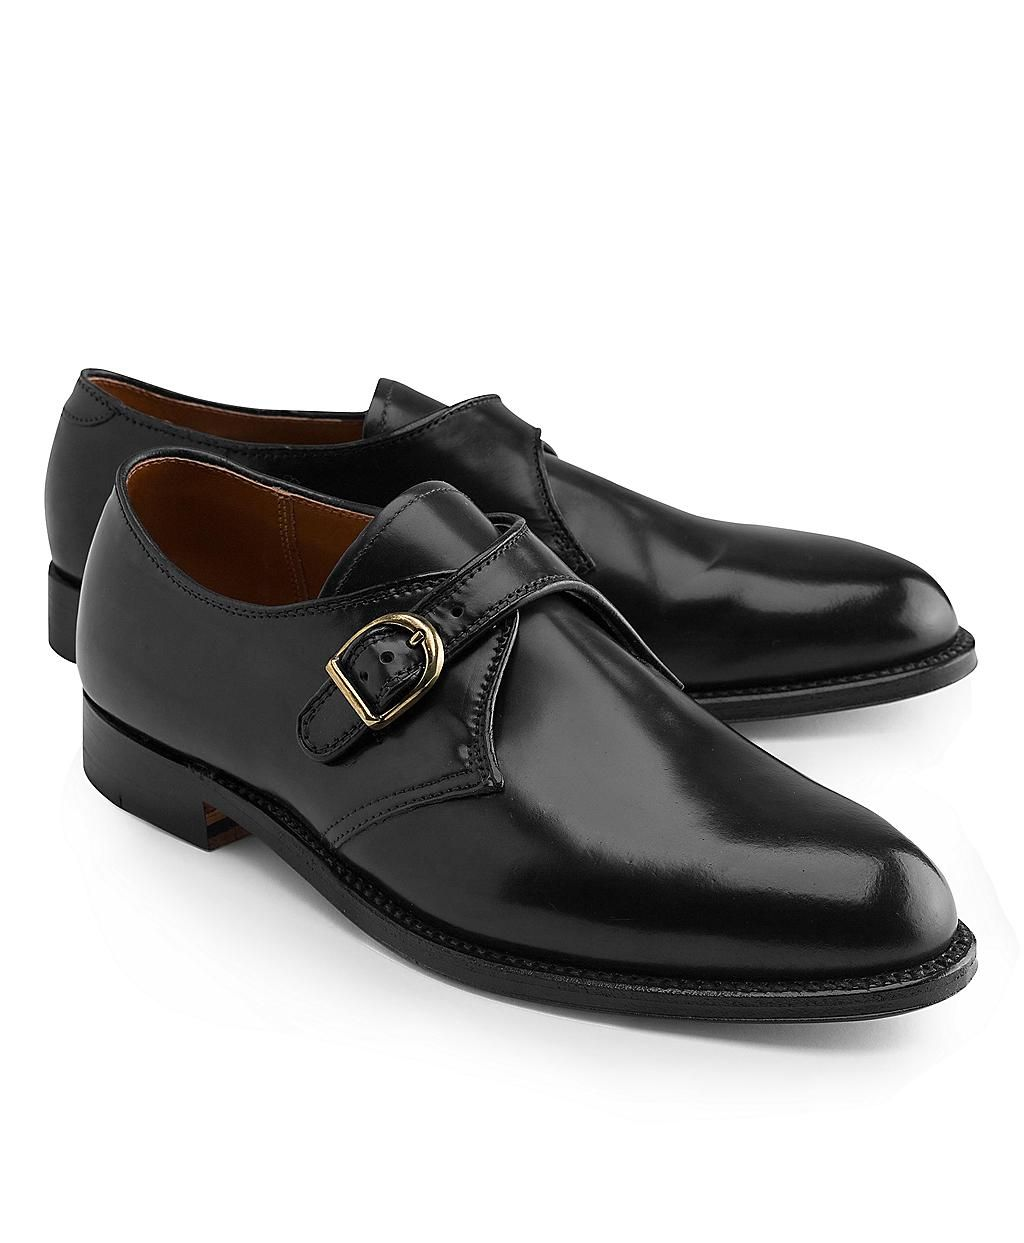 804b74a10a2 Classic and tasteful! (Cordovan Leather Monk Straps - Brooks ...